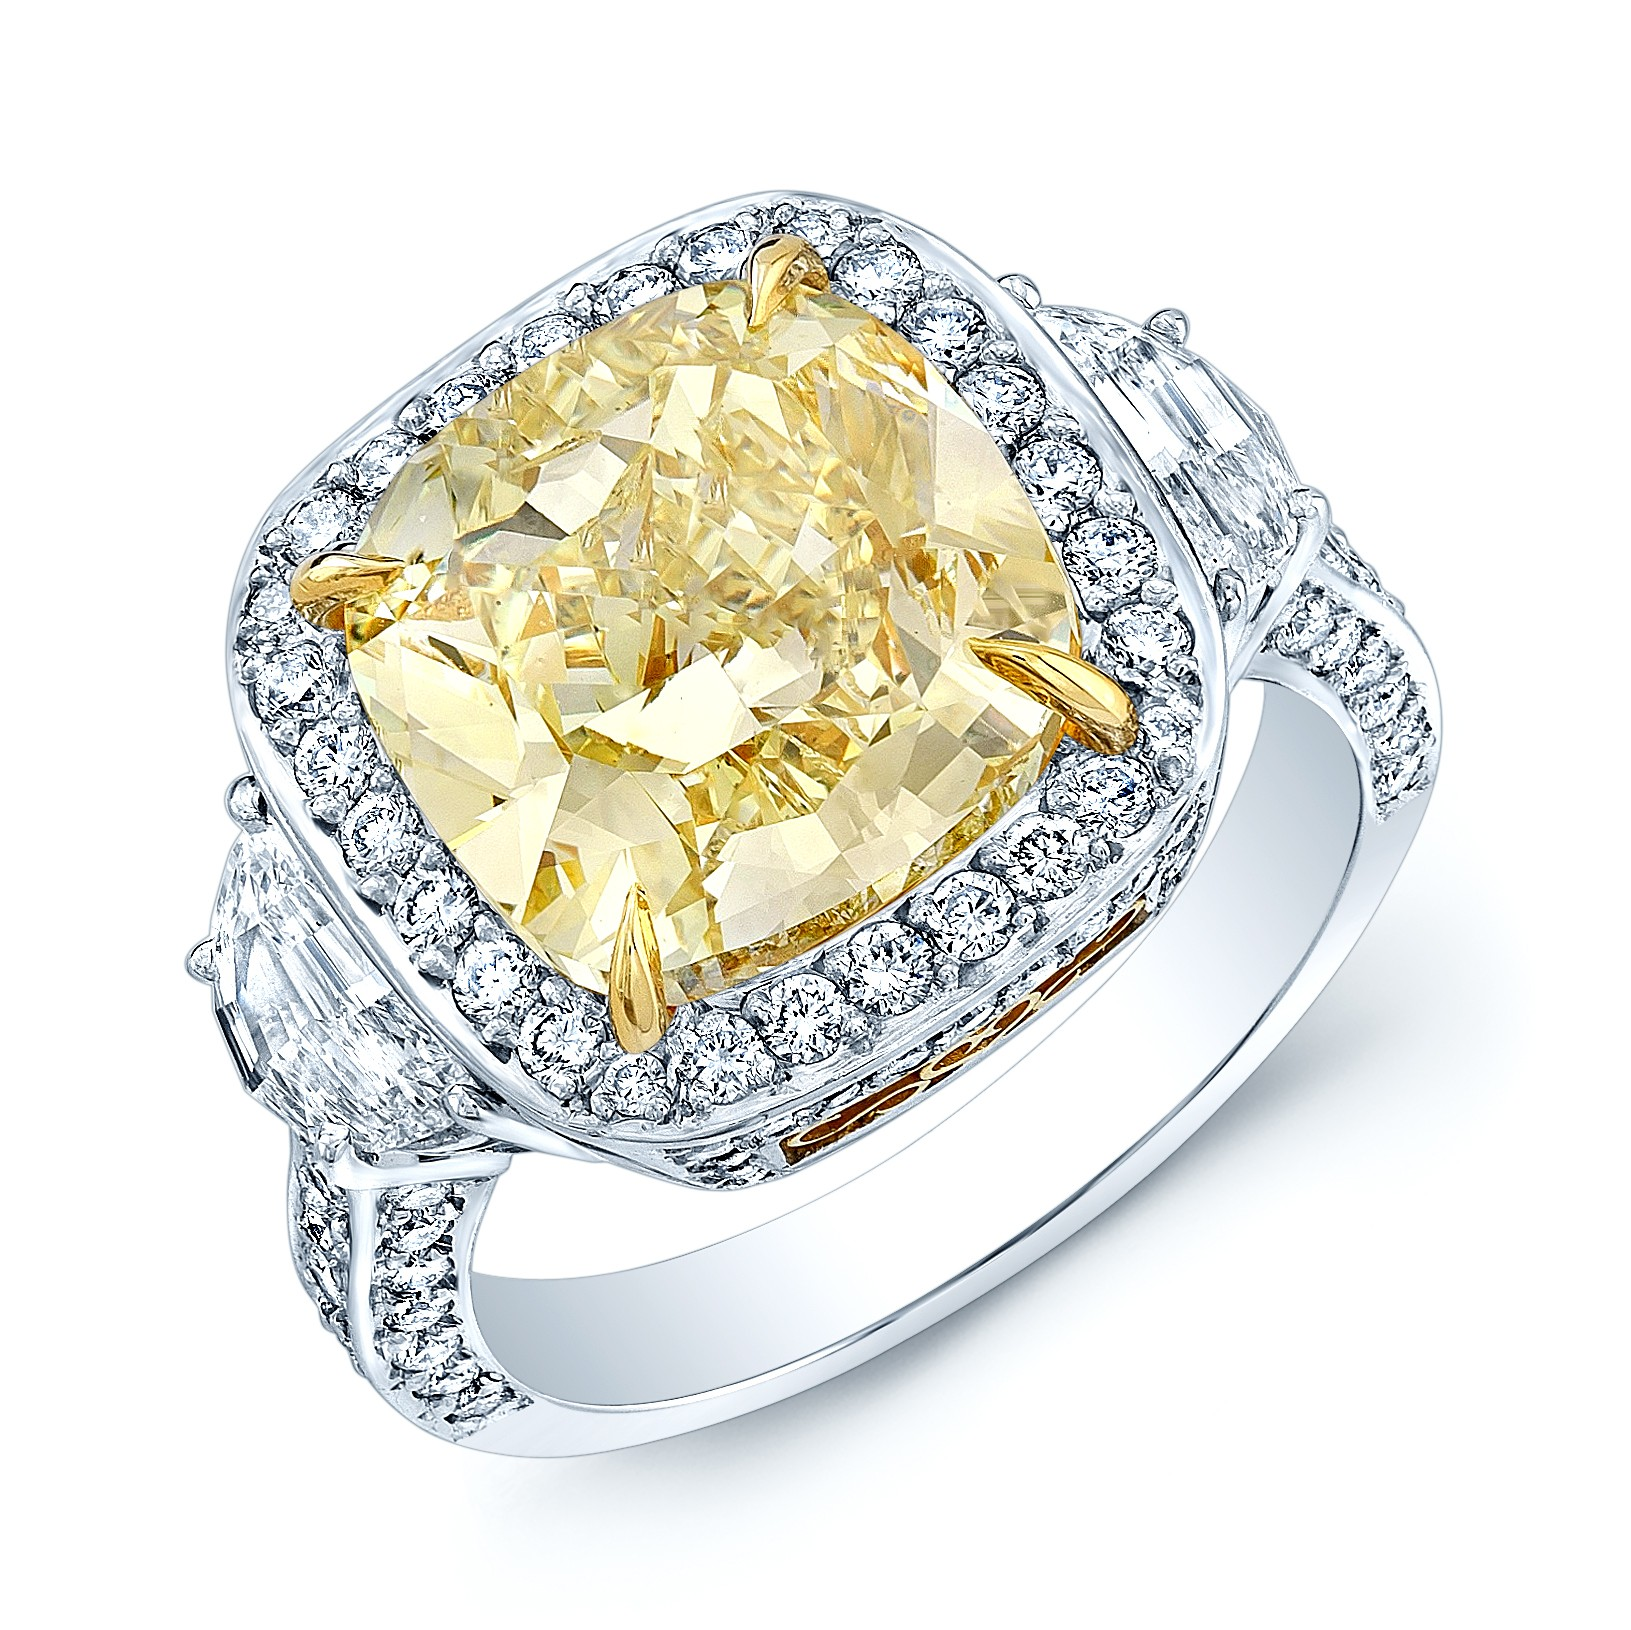 One Of A Kind Rare Gia 5.48 Carat Cushion Cut Fancy Yellow Diamond Halo Engagement Ring In Platinum